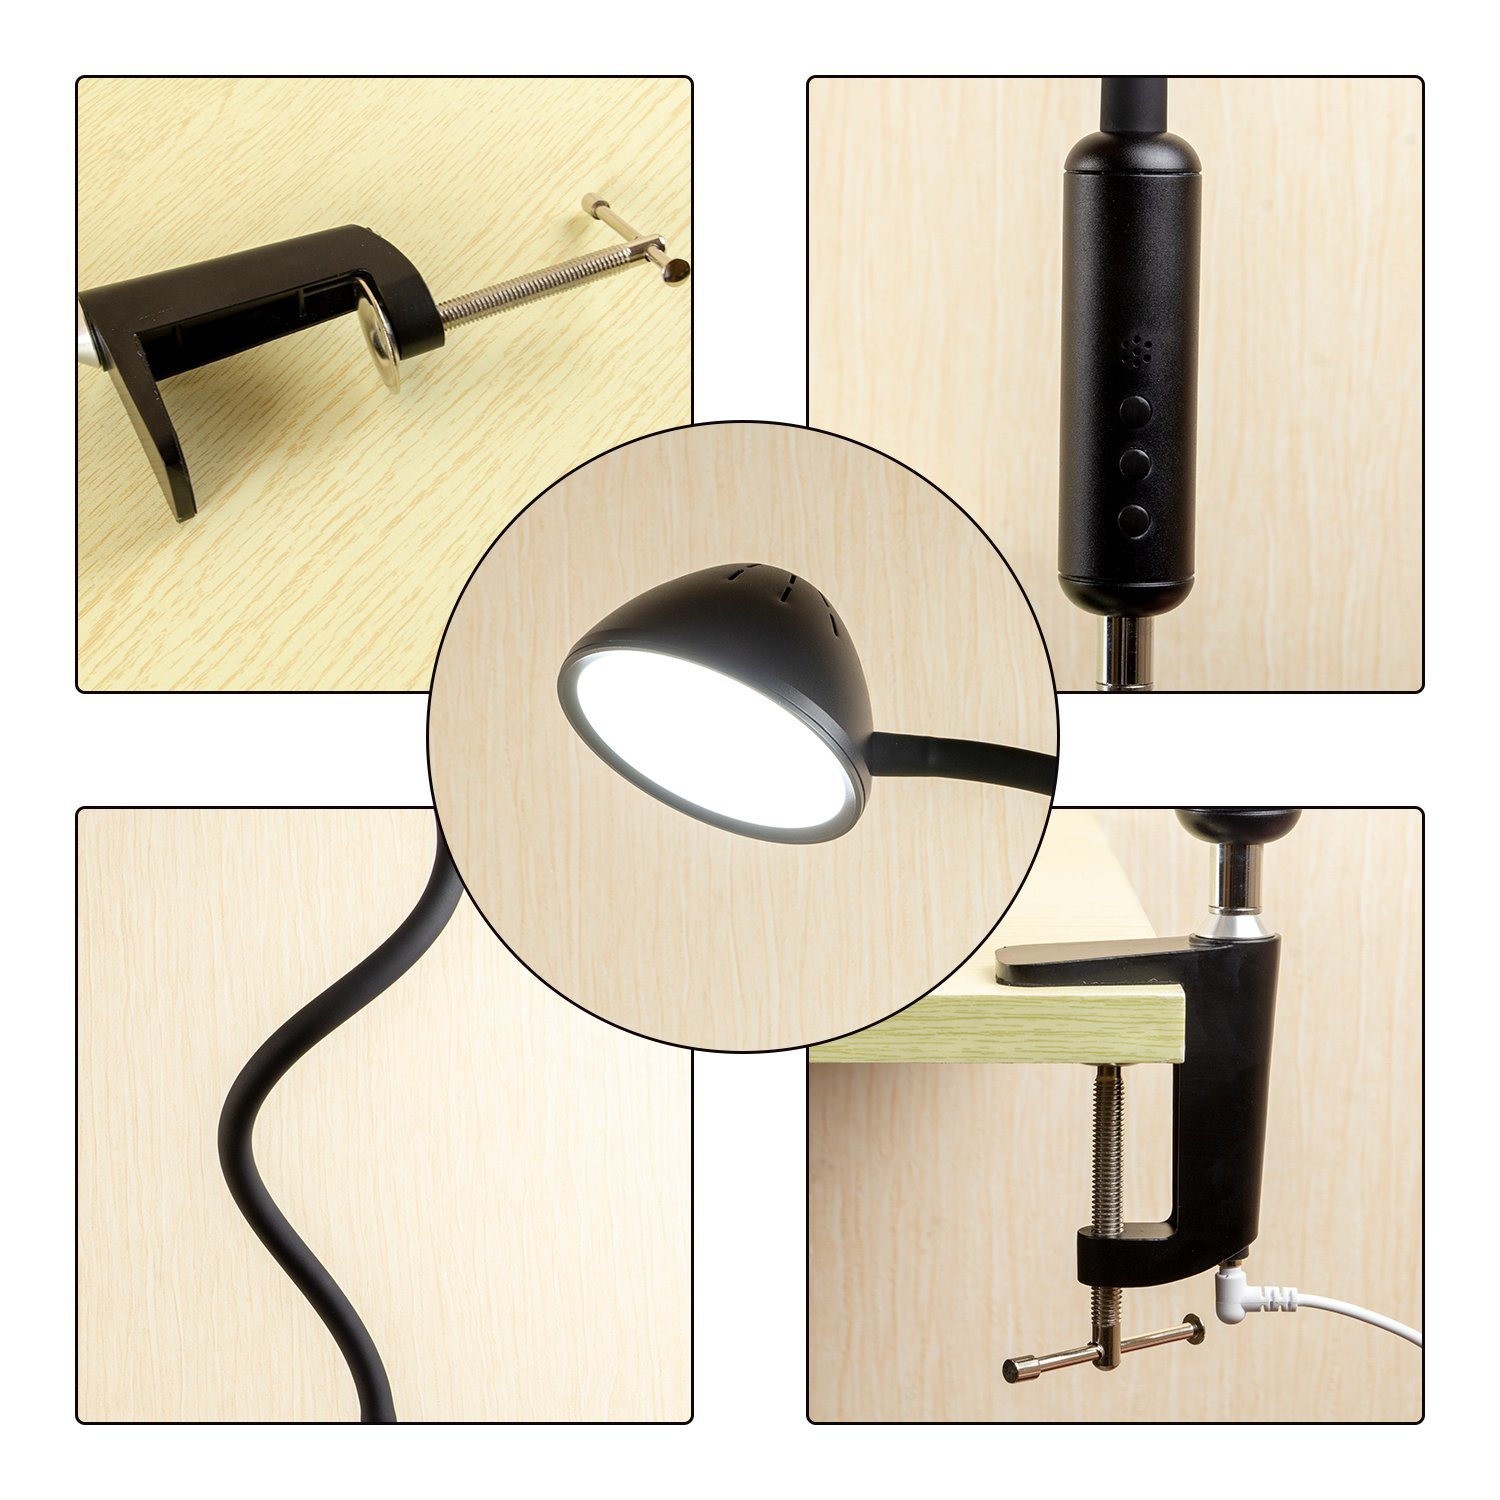 Image of: China Clip Desk Lamp Modern Metal Swing Arm Dimmable Drafting Table Lamp With Clamp Photos Pictures Made In China Com